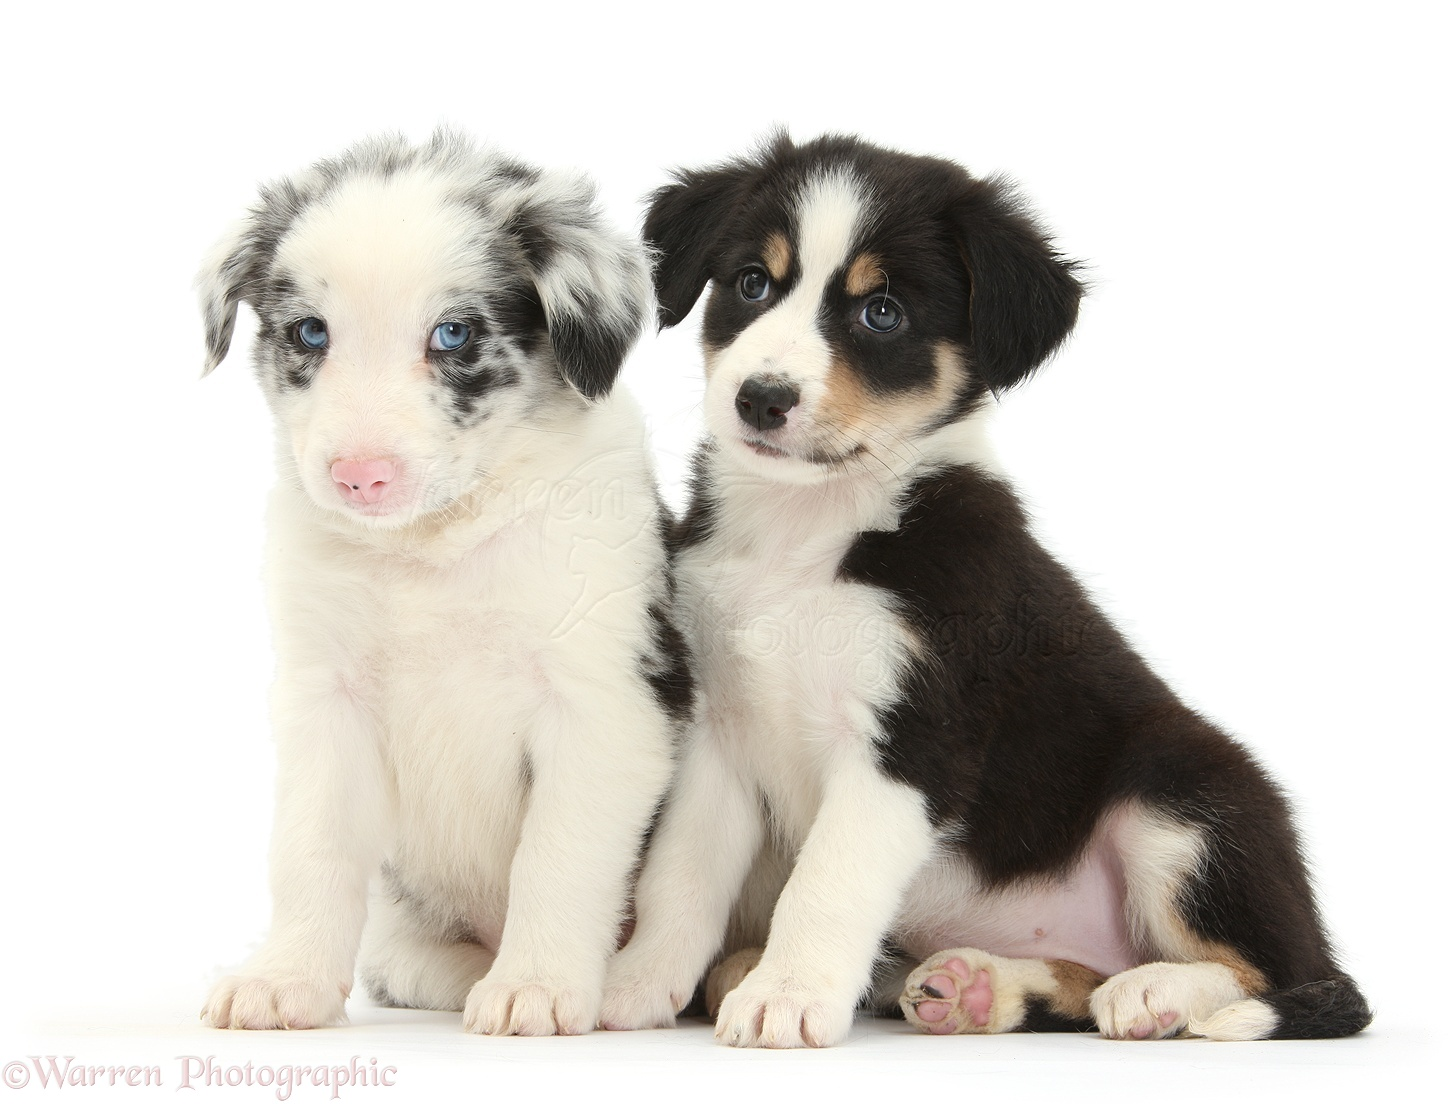 Dogs Tricolour And Merle Border Collie Puppies 6 Weeks Old Photo Wp35119